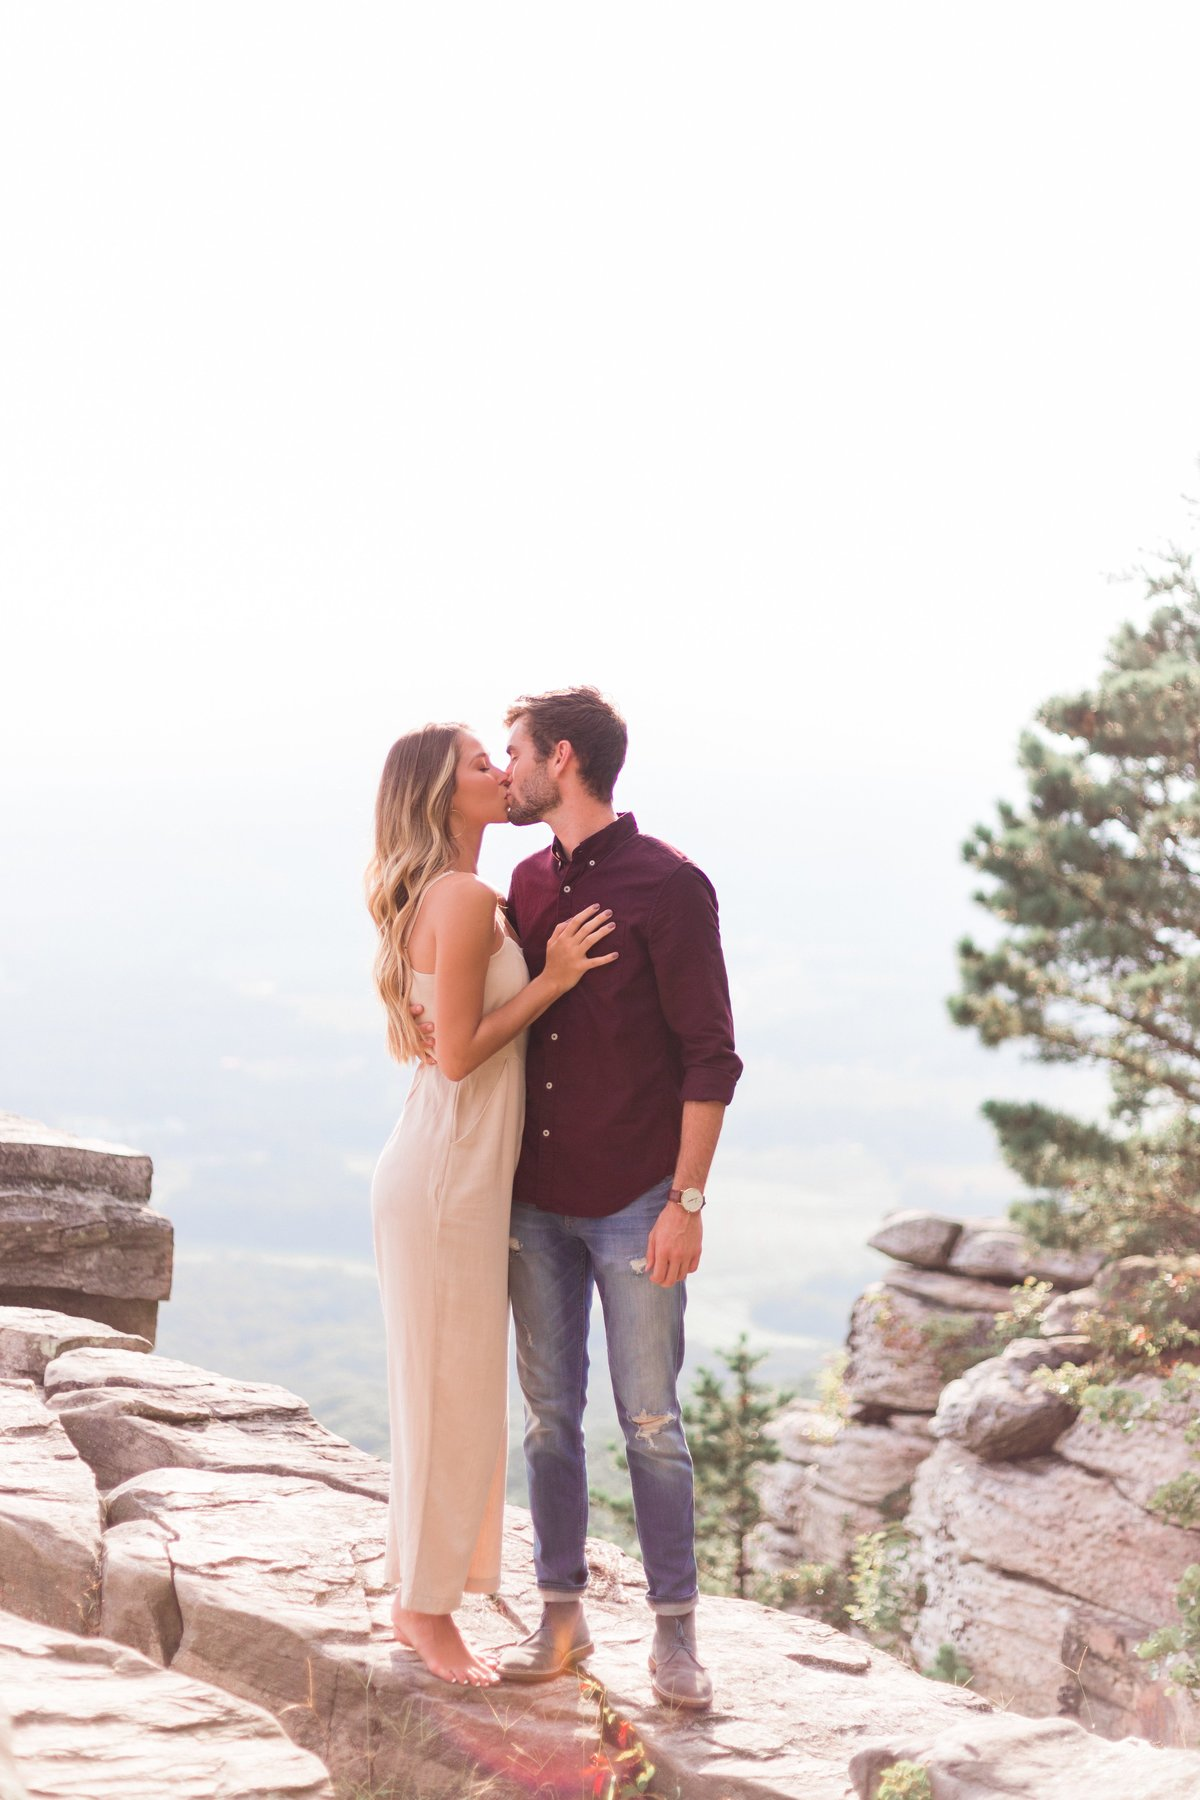 boone-engagement-session-destination-wedding-photographer-52